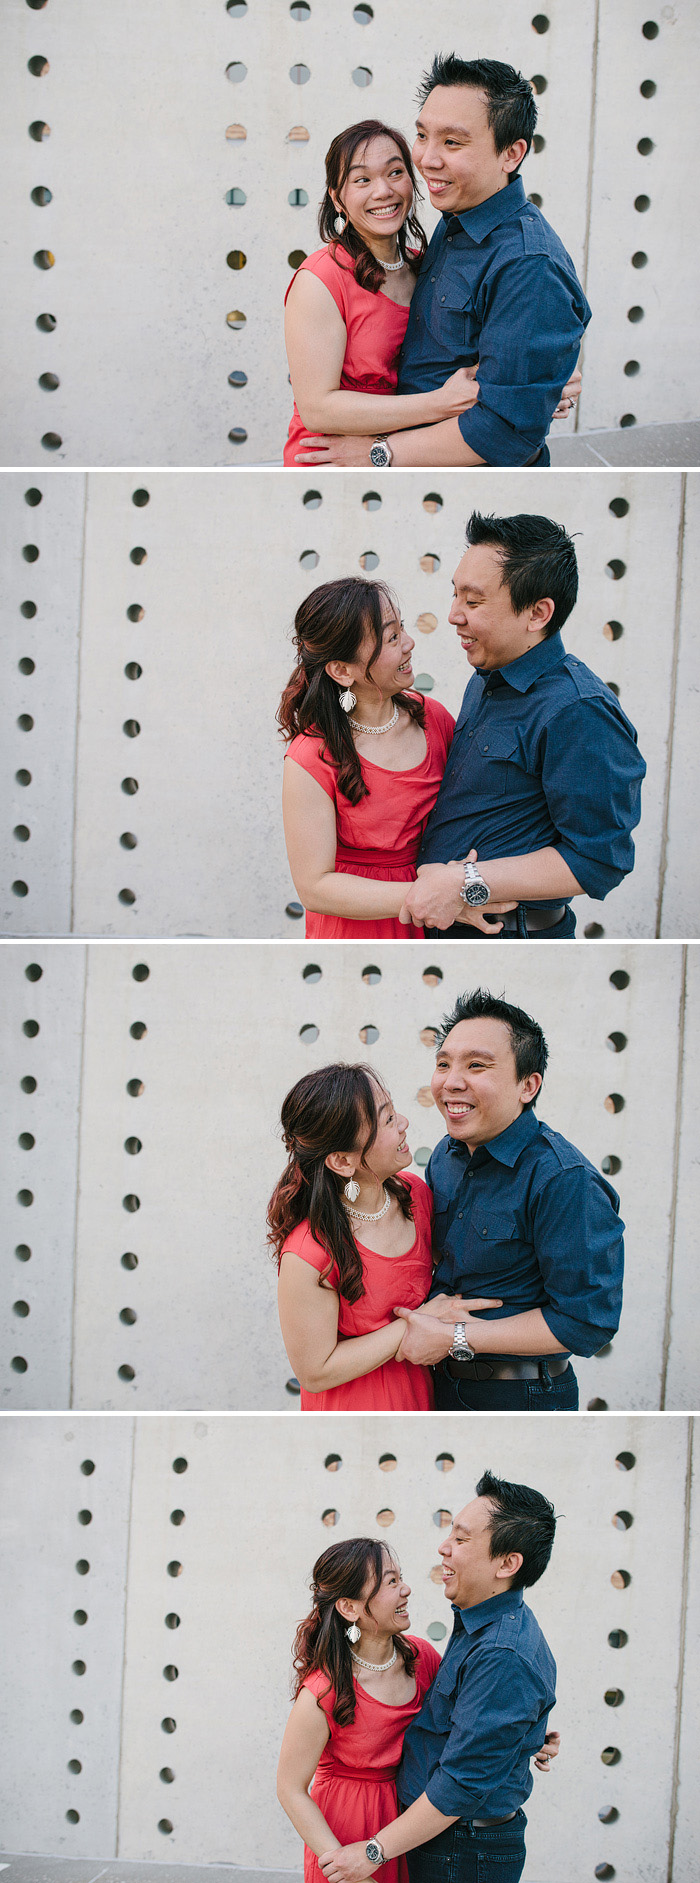 Super fun couple pictures.